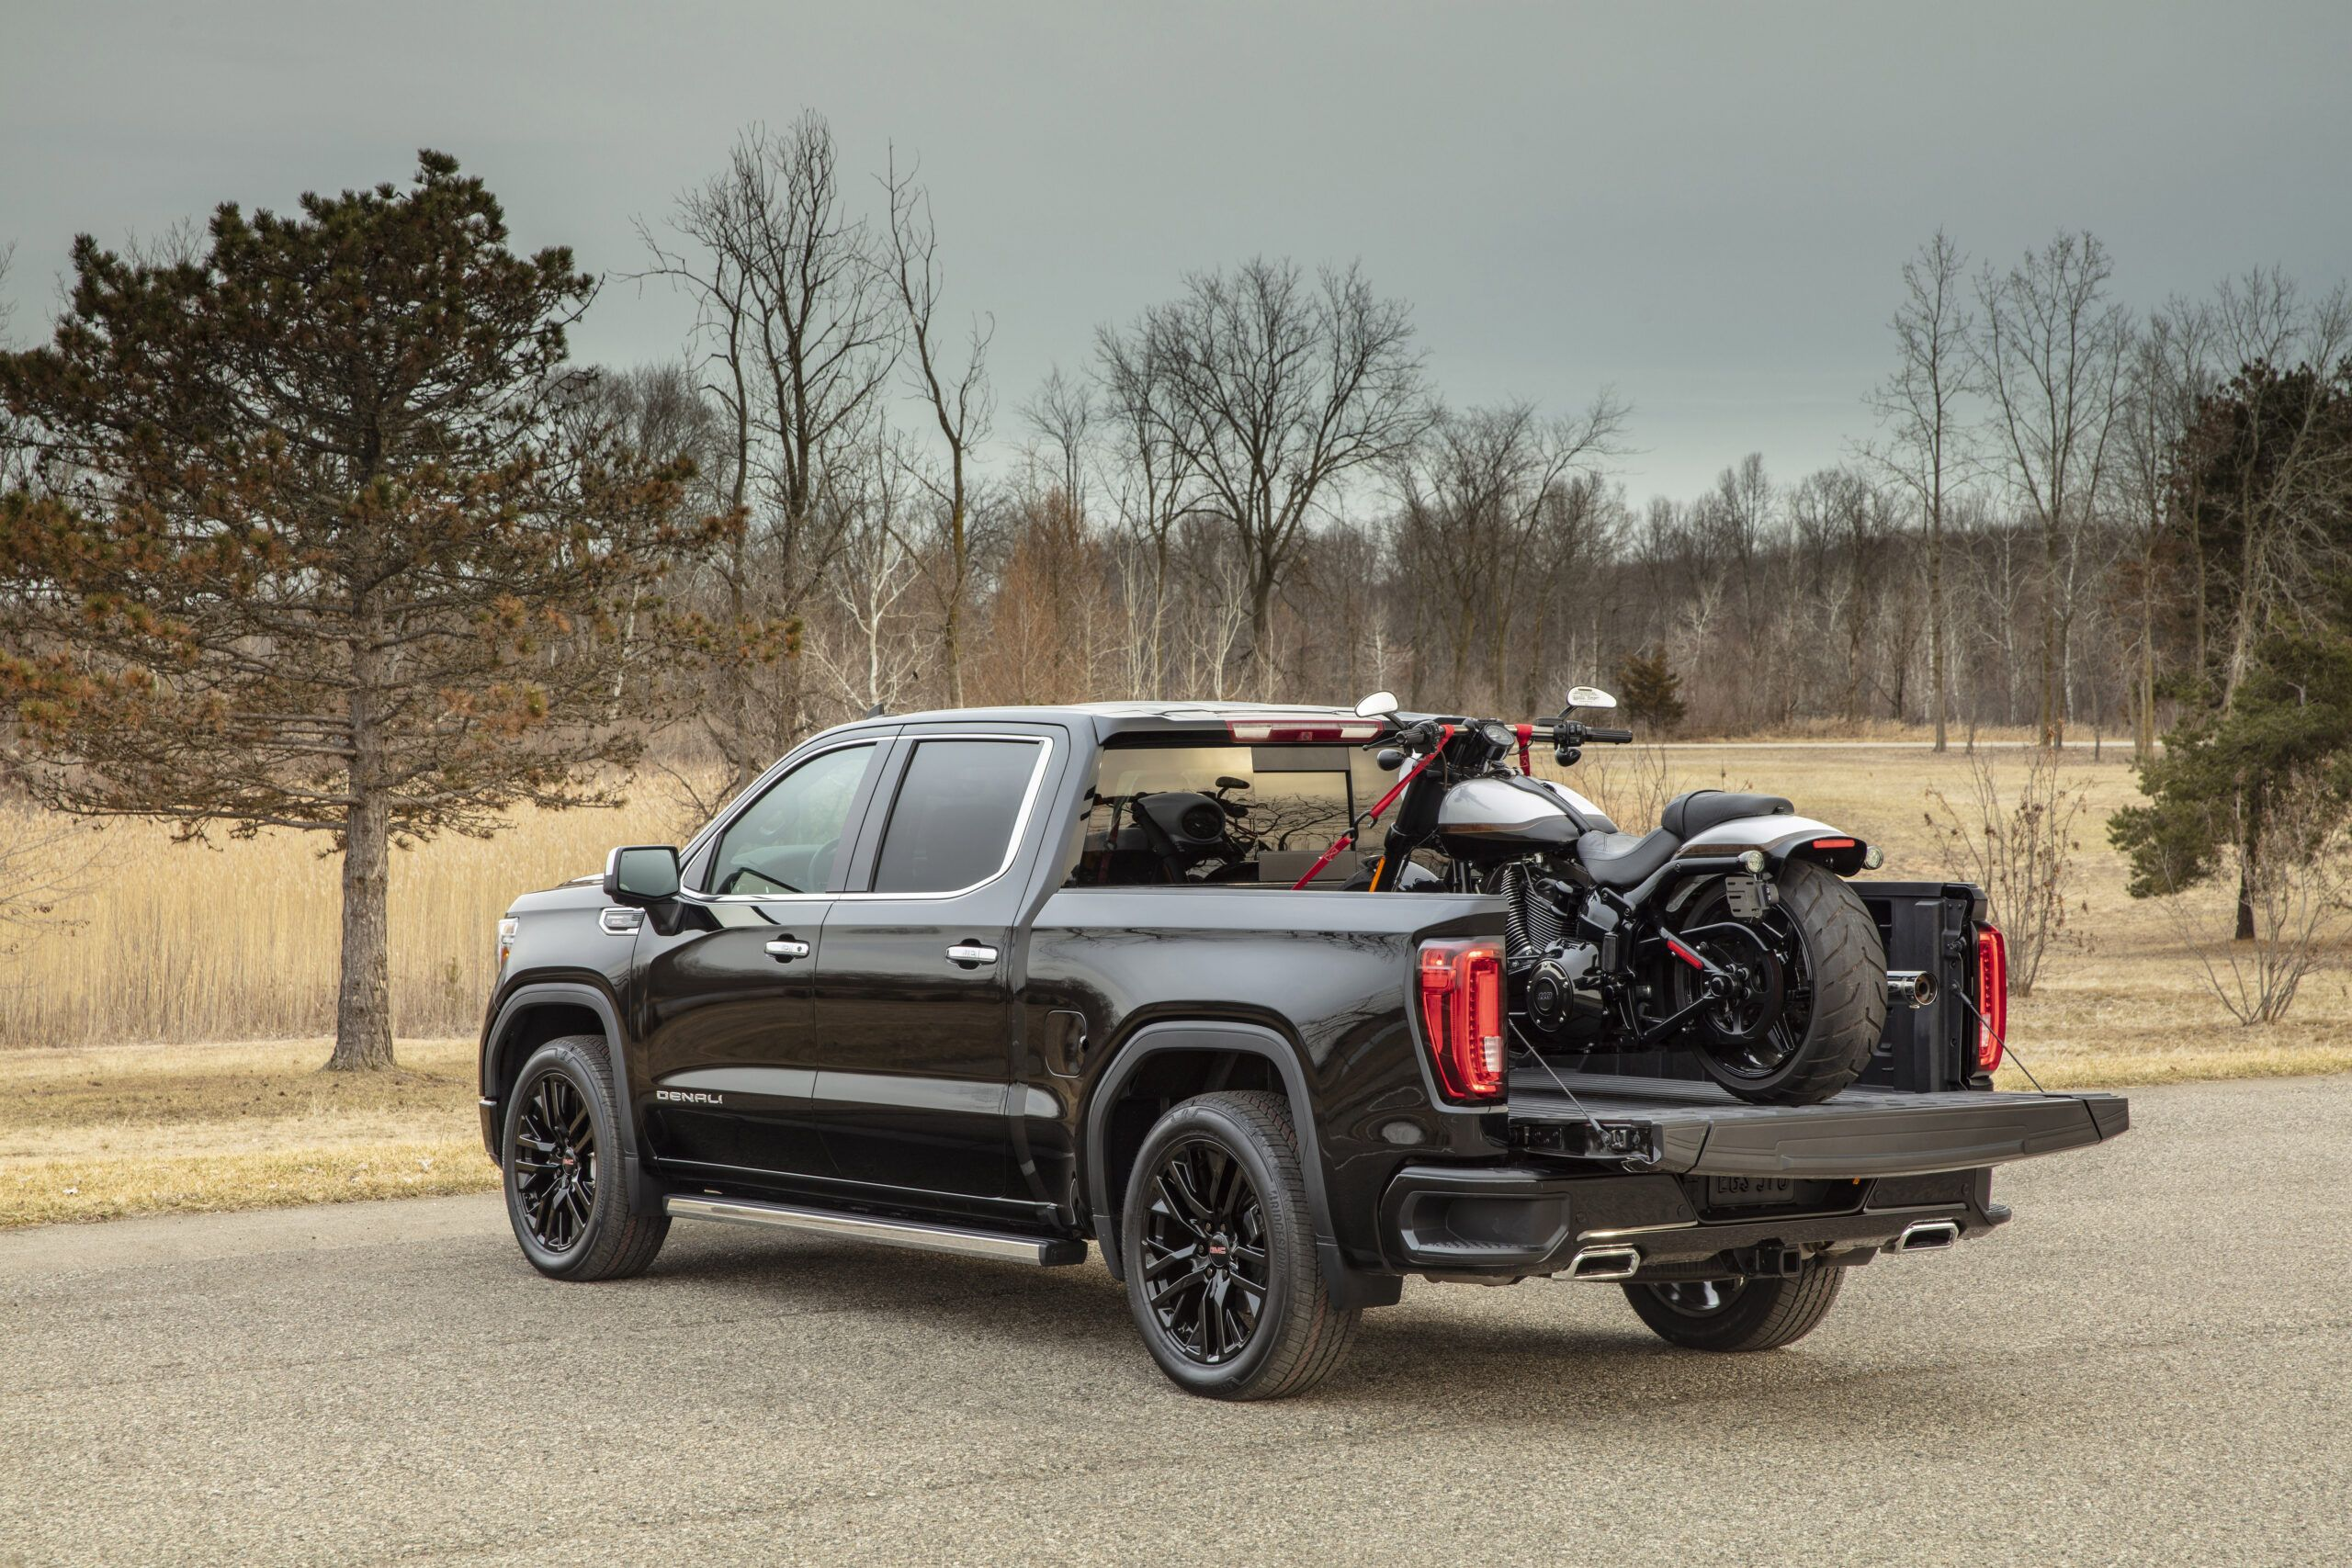 2020 Gmc Sierra Tailgate First Drive Check More At Http Dailymaza Me 2020 Gmc Sierra Tailgate First Drive Di 2020